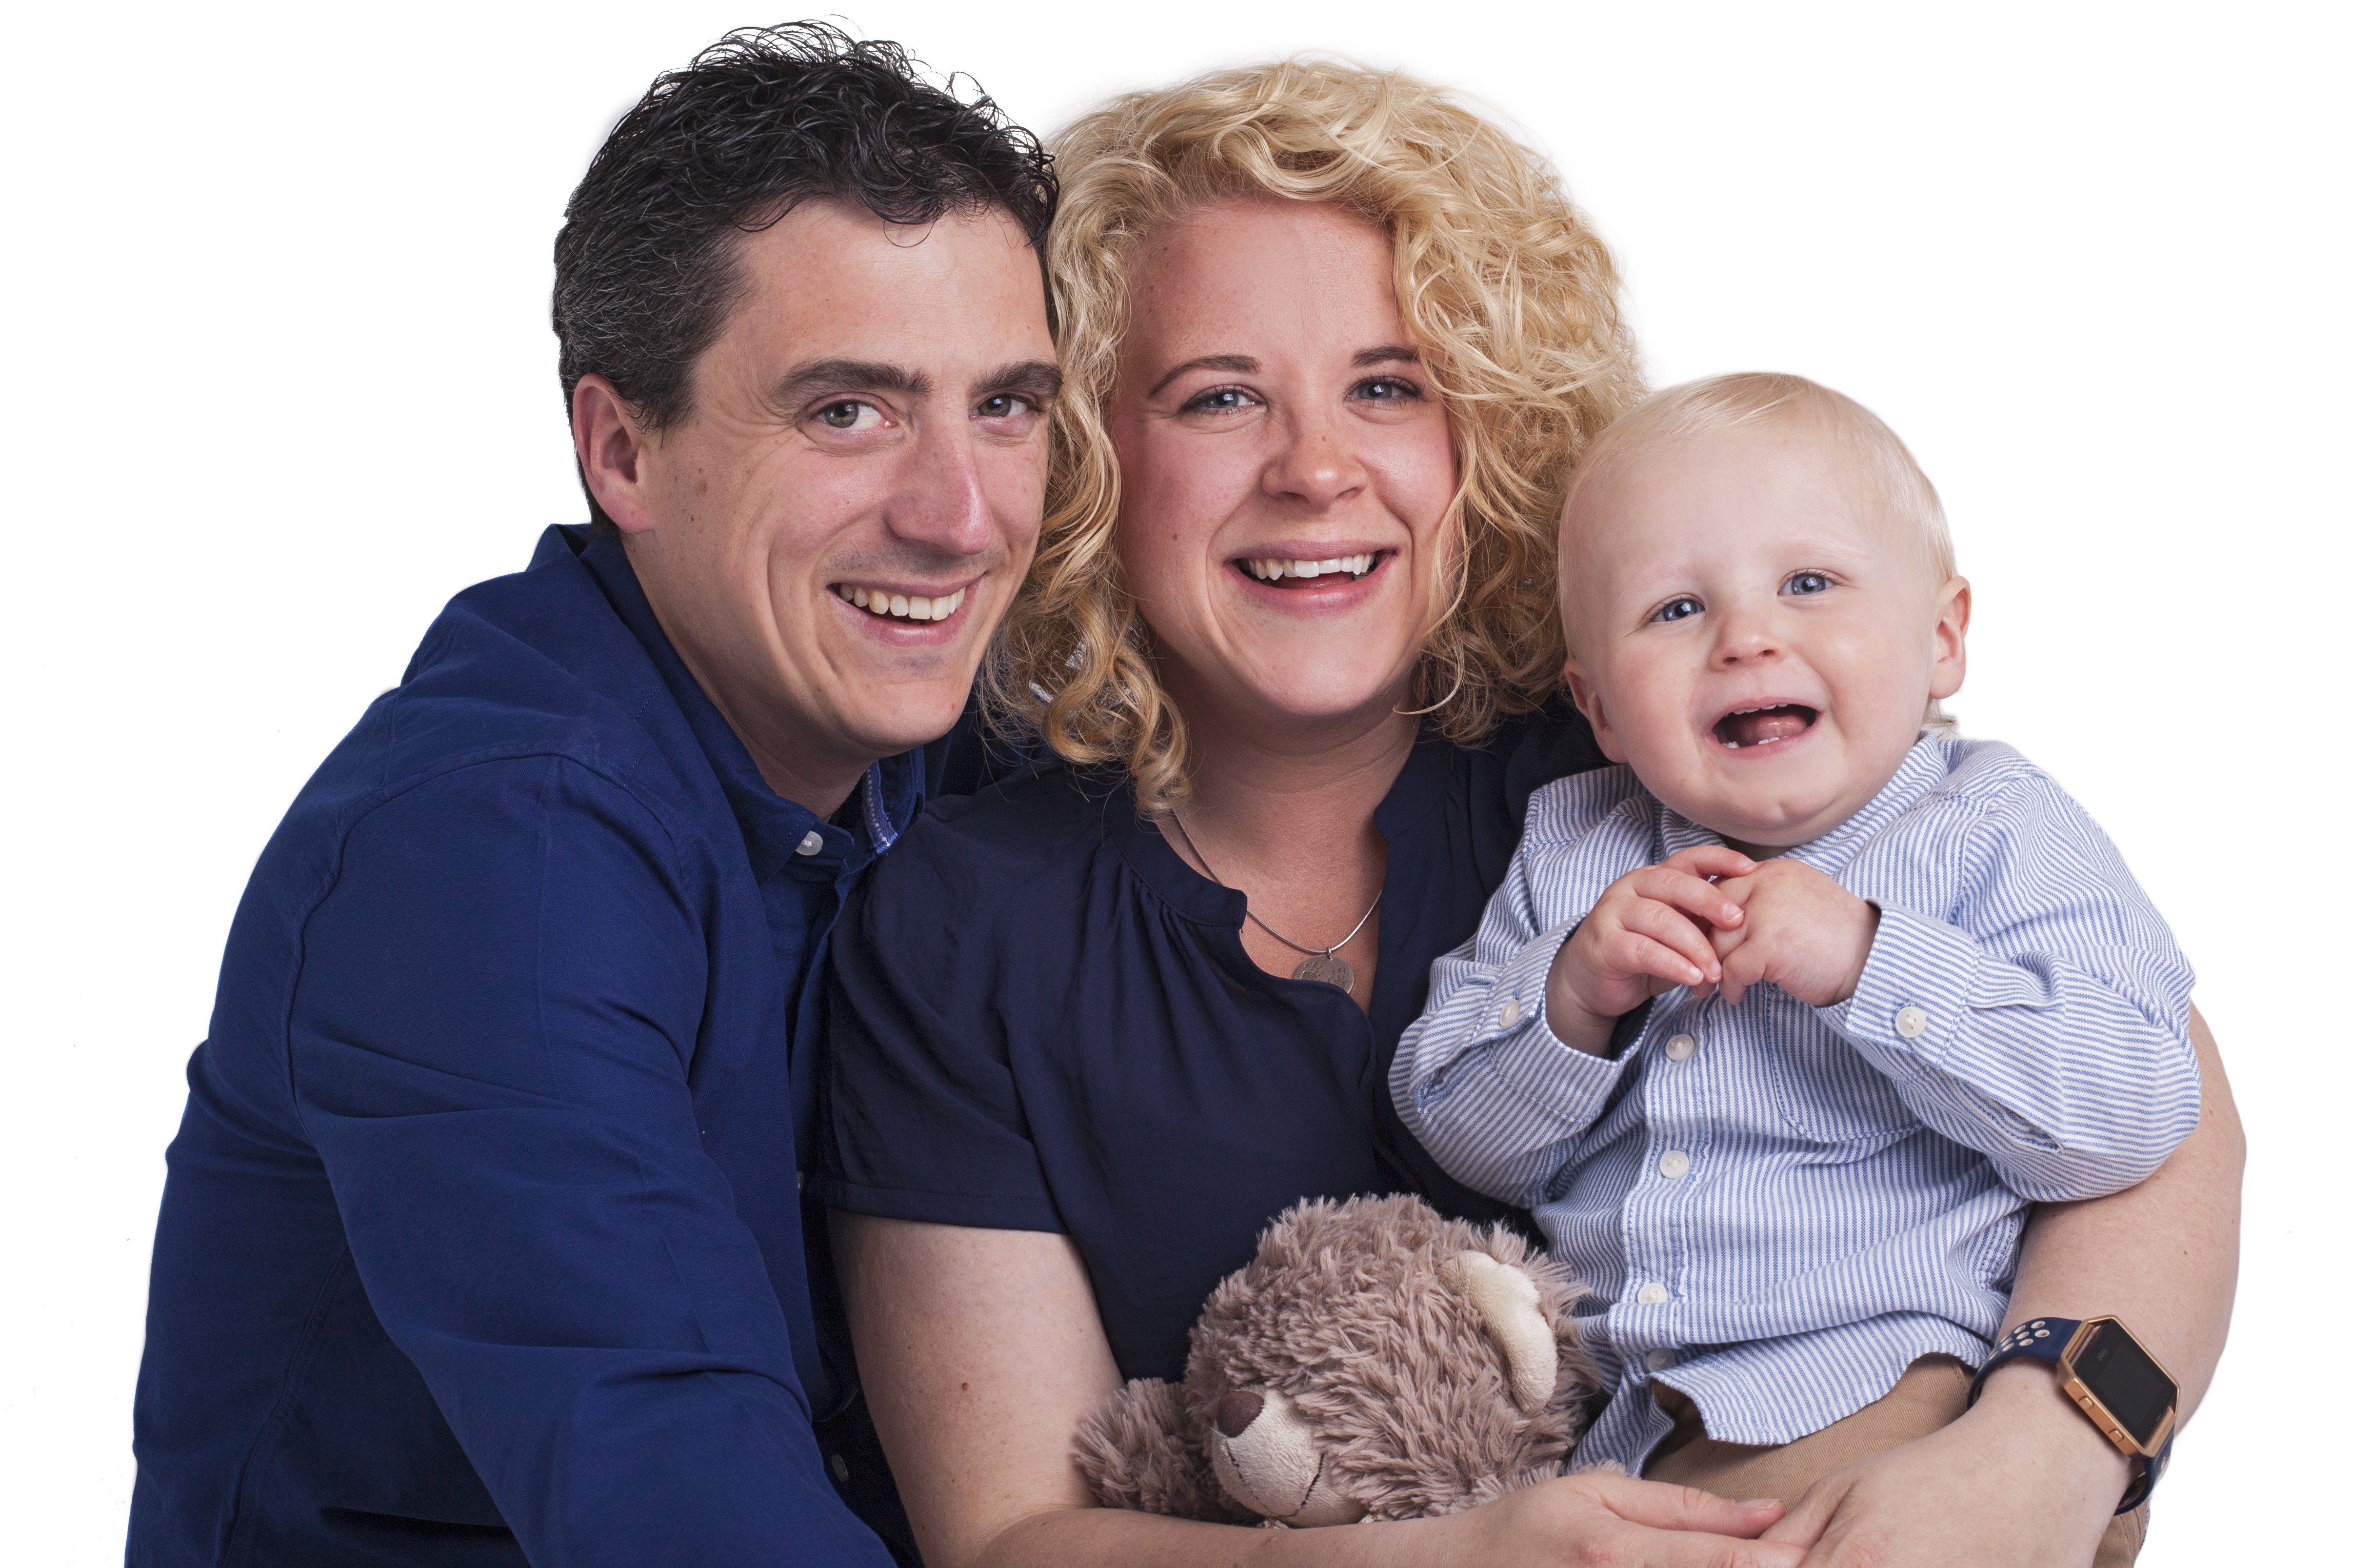 Family photographer Sutton Coldfield